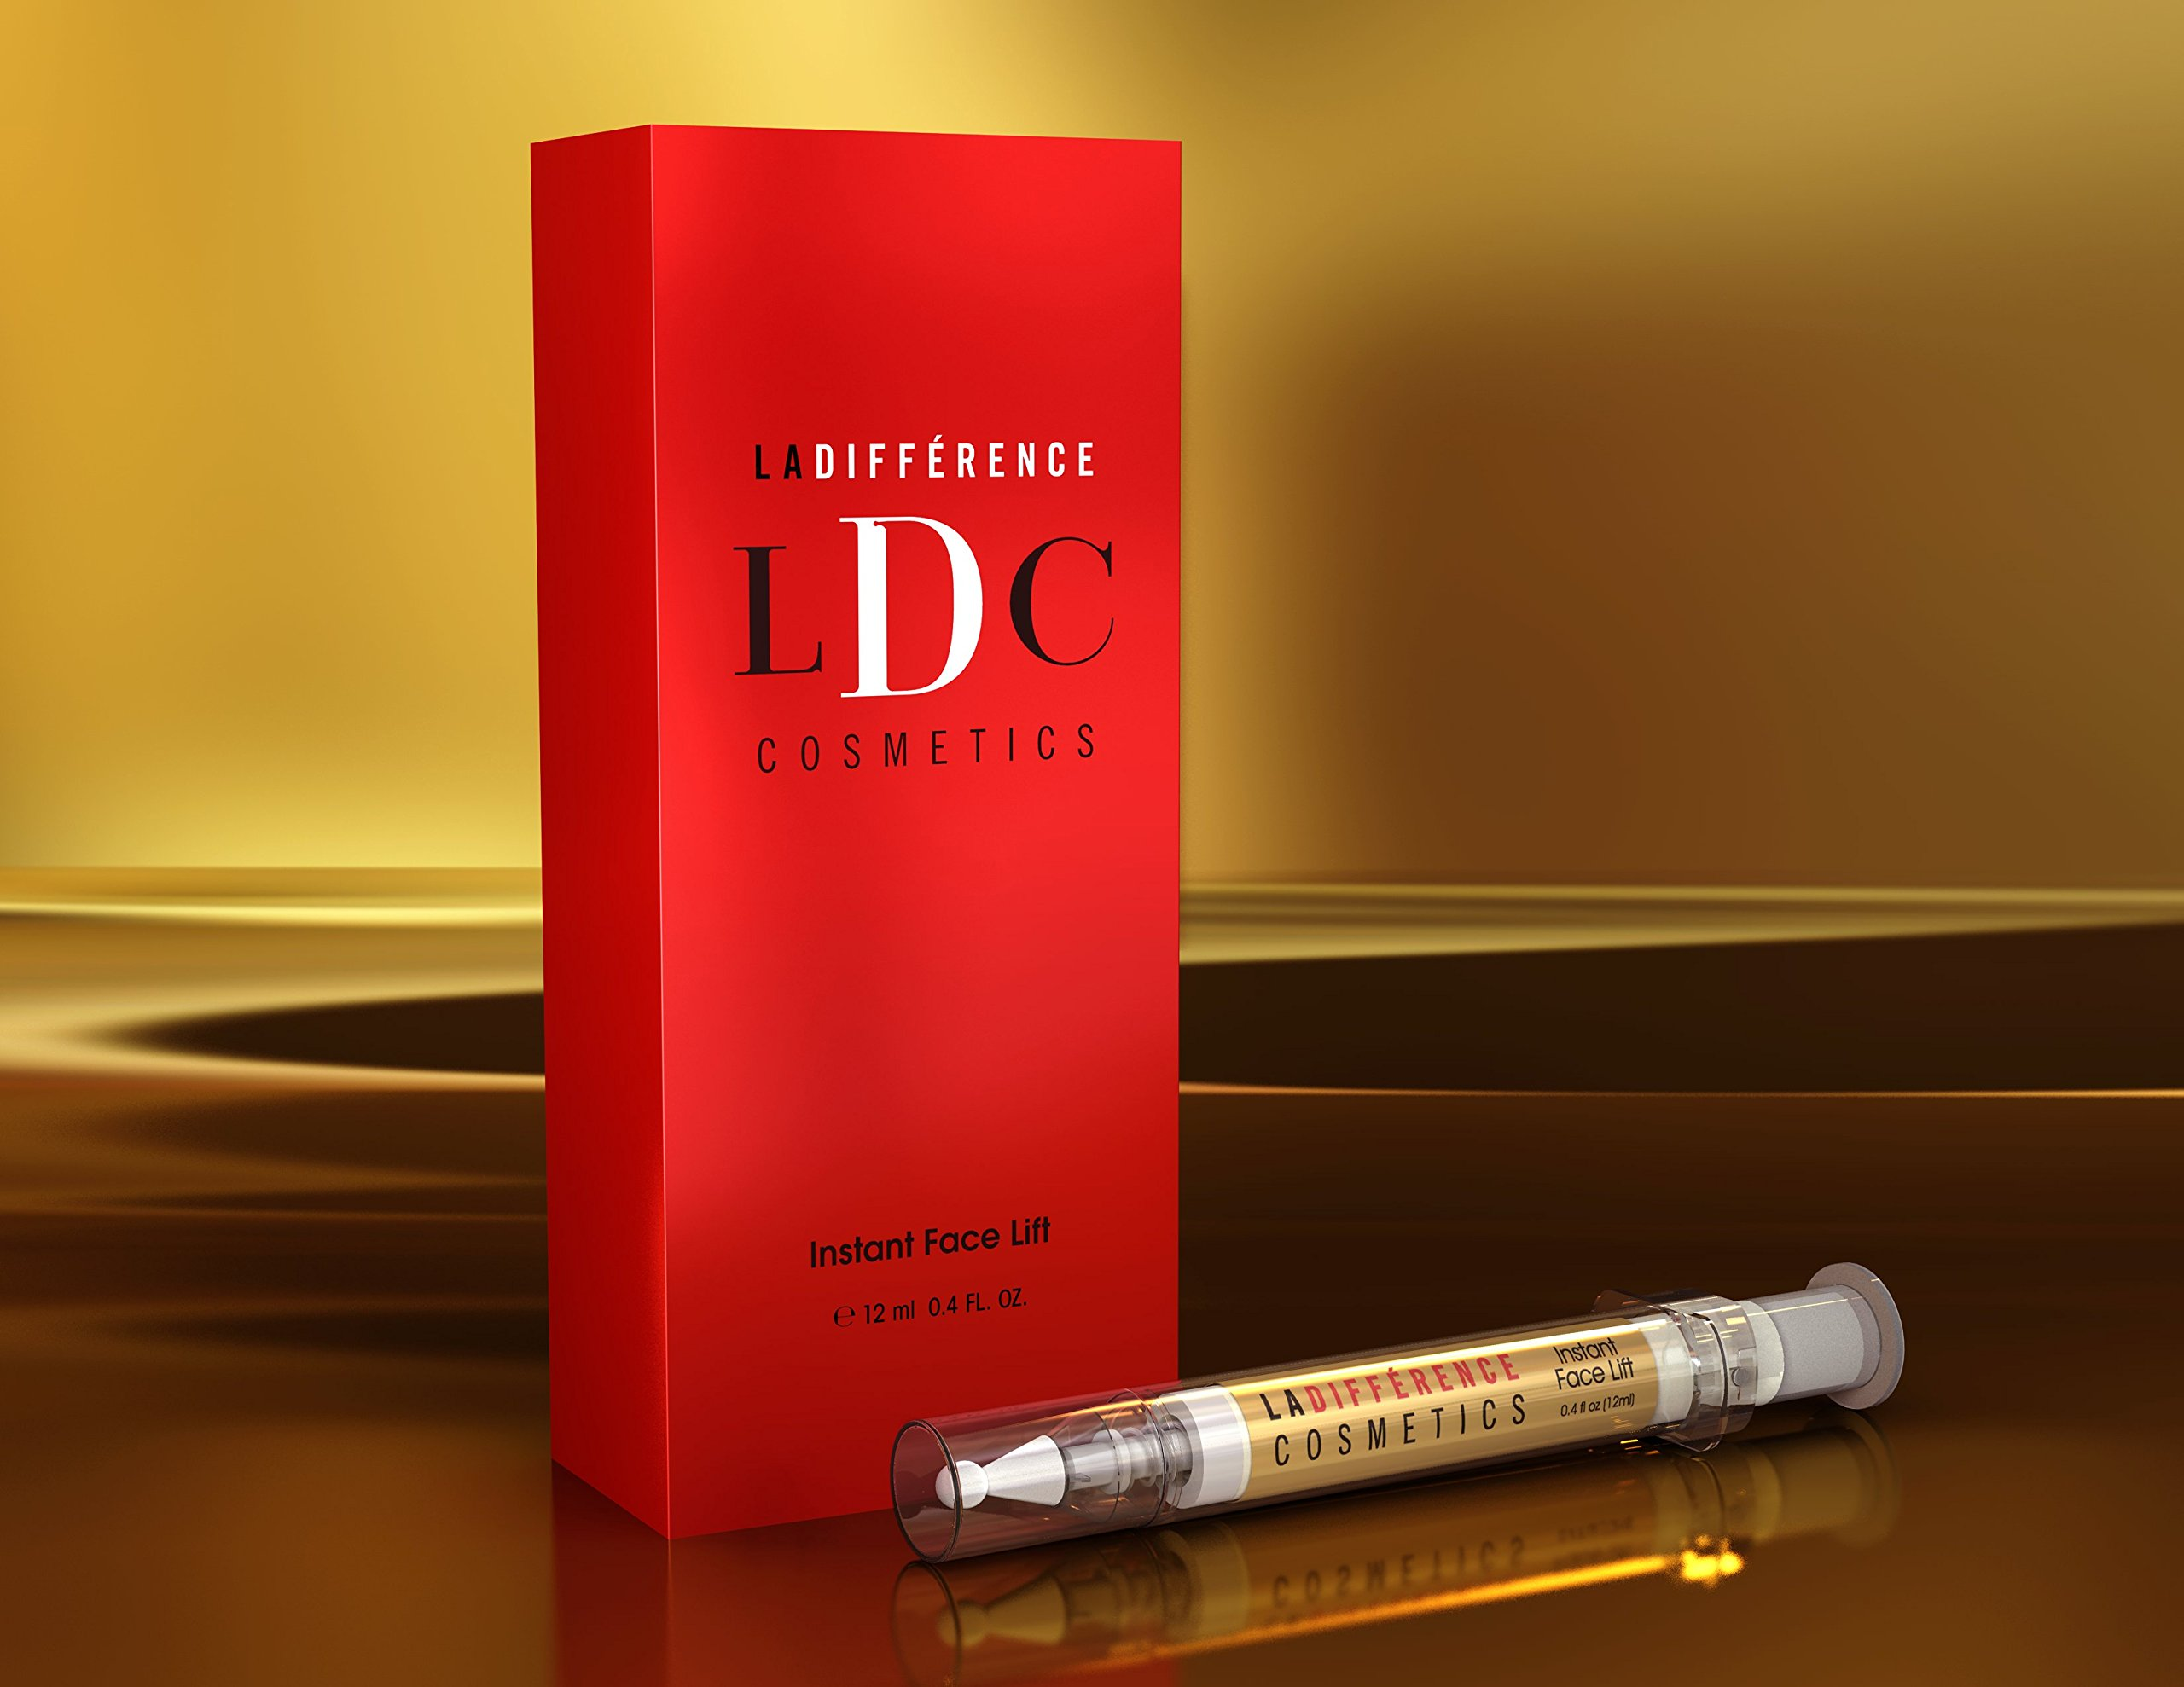 La Différence Cosmetics Instant Face Lift - Erase Wrinkles Instantly, Best Skin Tightening Cream - For Women and Men